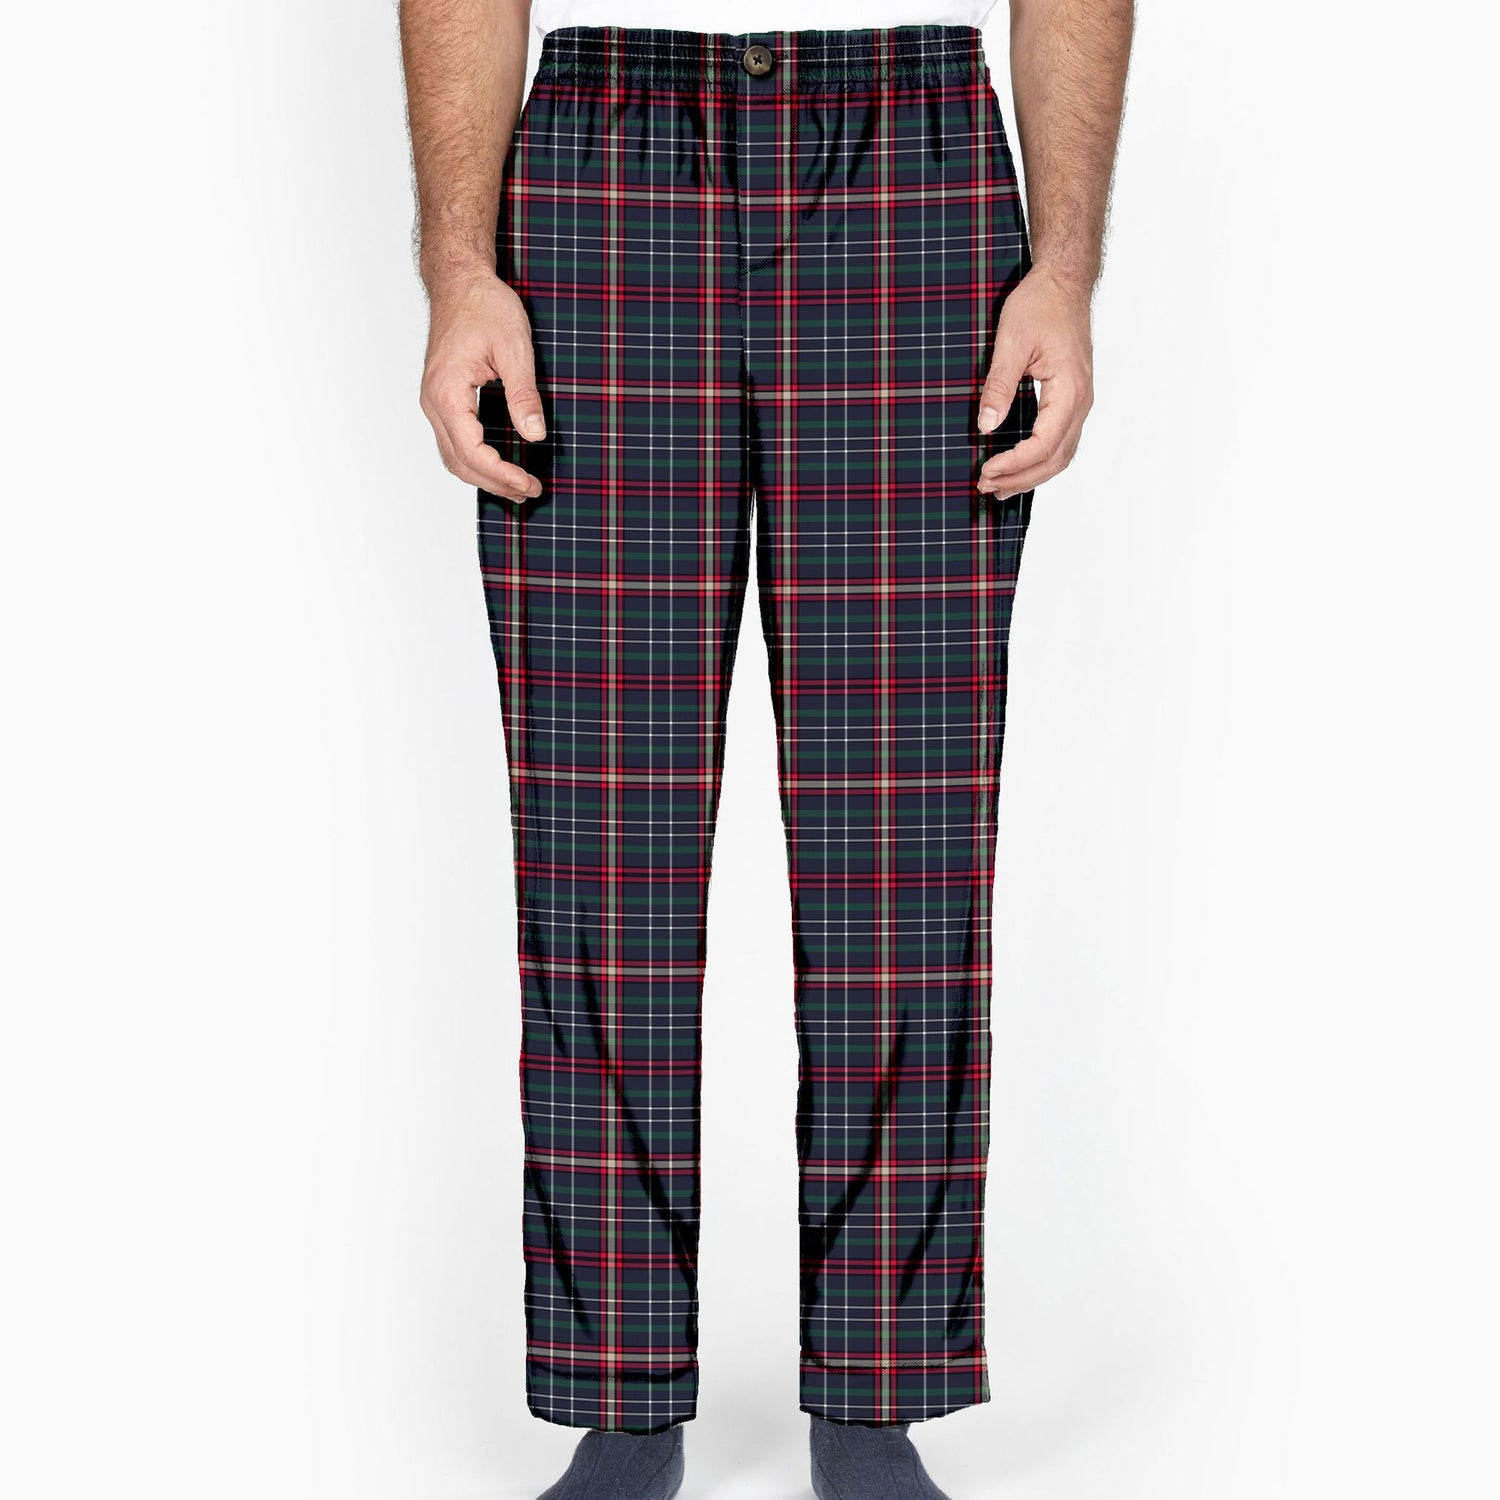 The All Work and No Play Plaid Flannel Lounge Pant